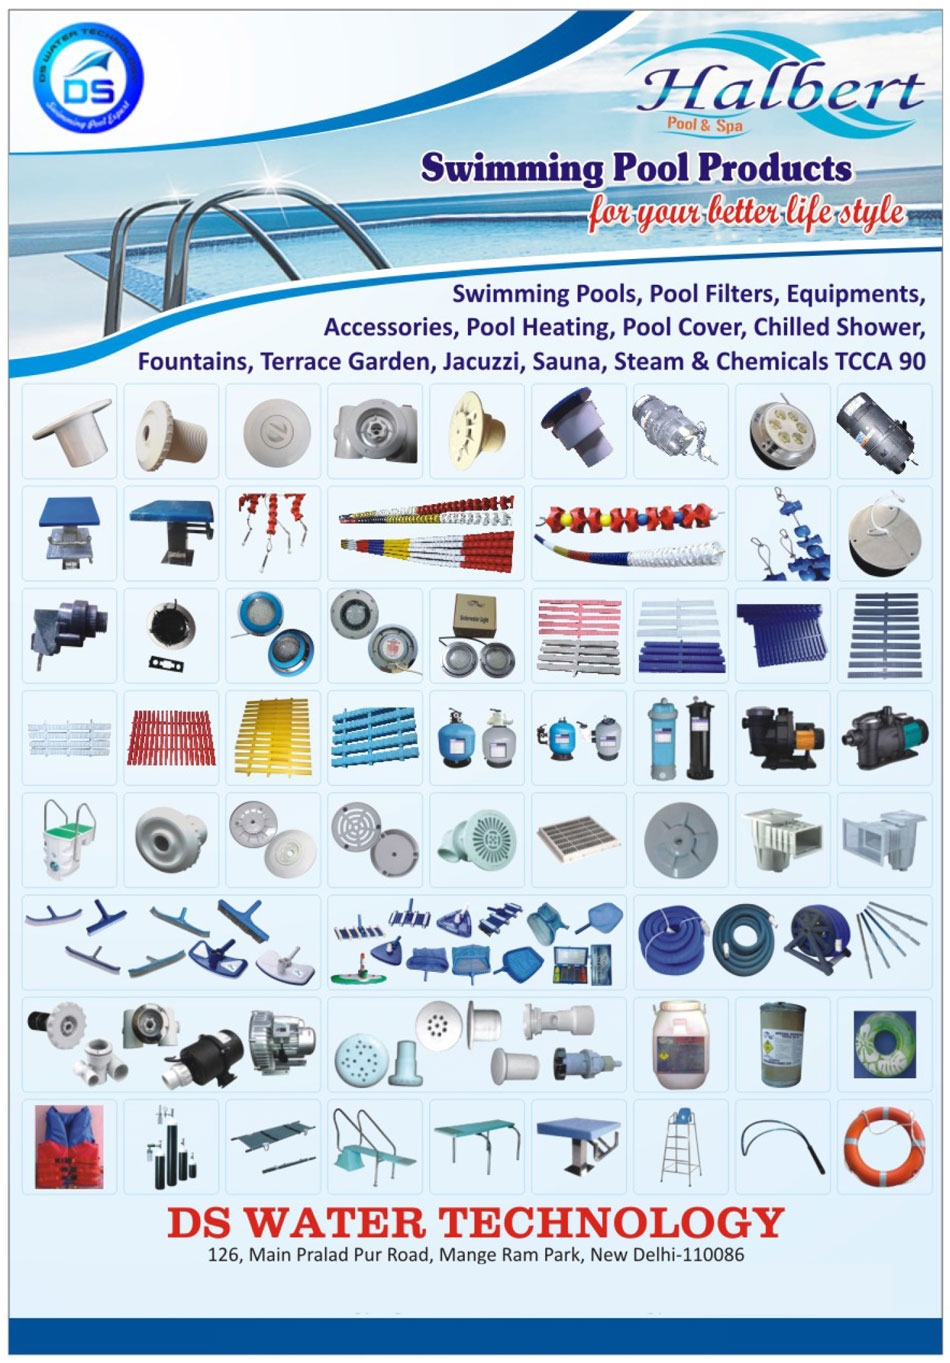 Swimming Pool Products, Swimming Pools, Swimming Pool Filters, Swimming Pool Equipments, Swimming Pool Accessories, Swimming Pool Heatings, Swimming Pool Covers, Swimming Pool Chilled Showers, Swimming Pool Fountains, Terrace Gardens, Swimming Pool Jacuzzi, Swimming Pool Sauna, Swimming Pool Steam Products, Chemicals TCCA 90